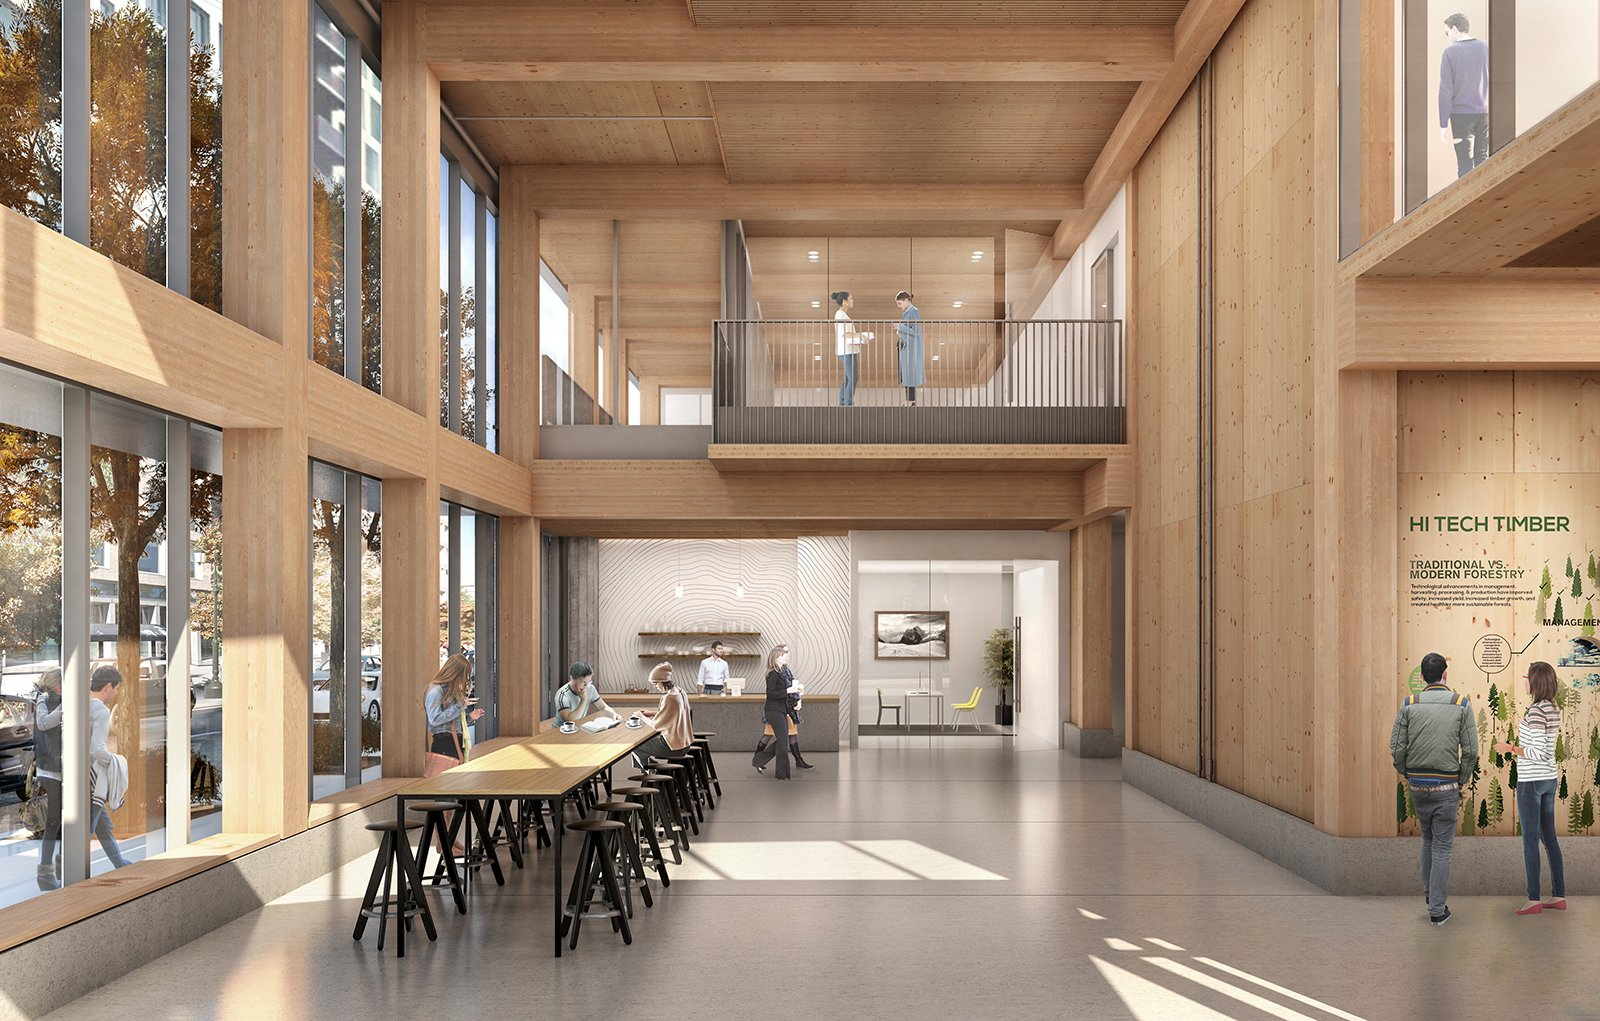 The First Mass Timber High Rise Building In The U S Gets